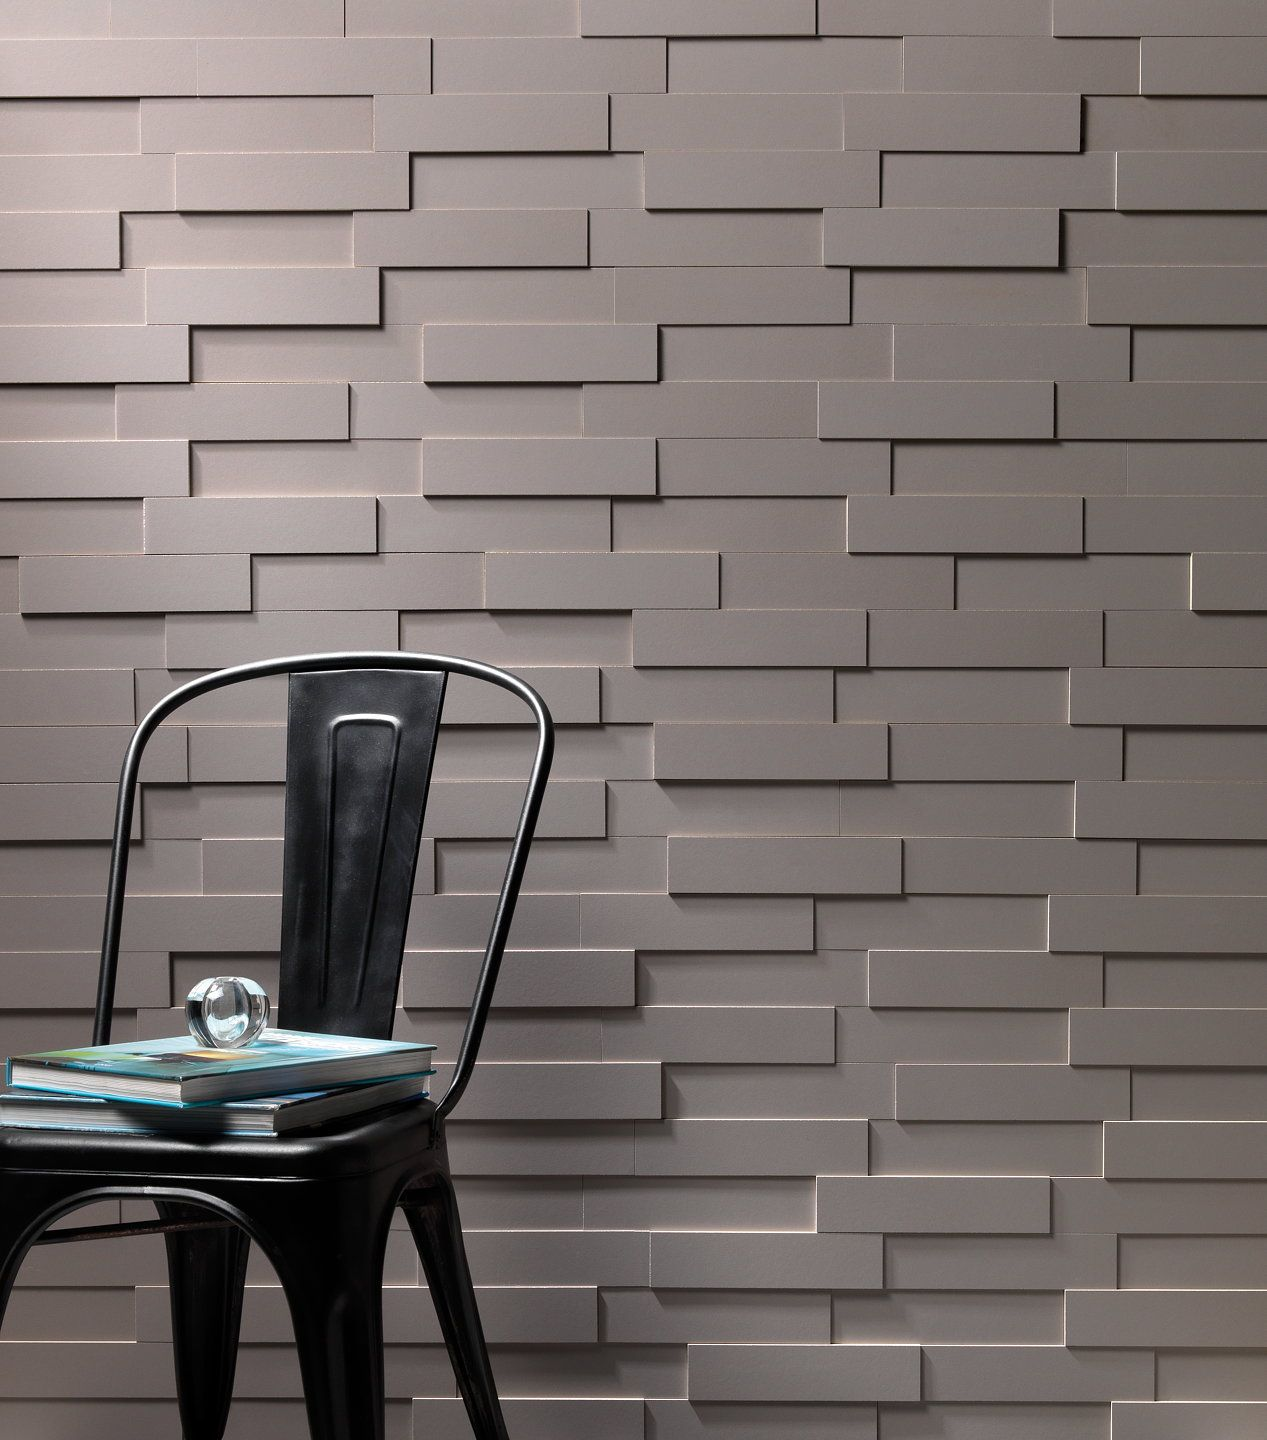 Nemo Unveils Three Dimensional Tile Collection Tiles Wall Tiles Interior Styling